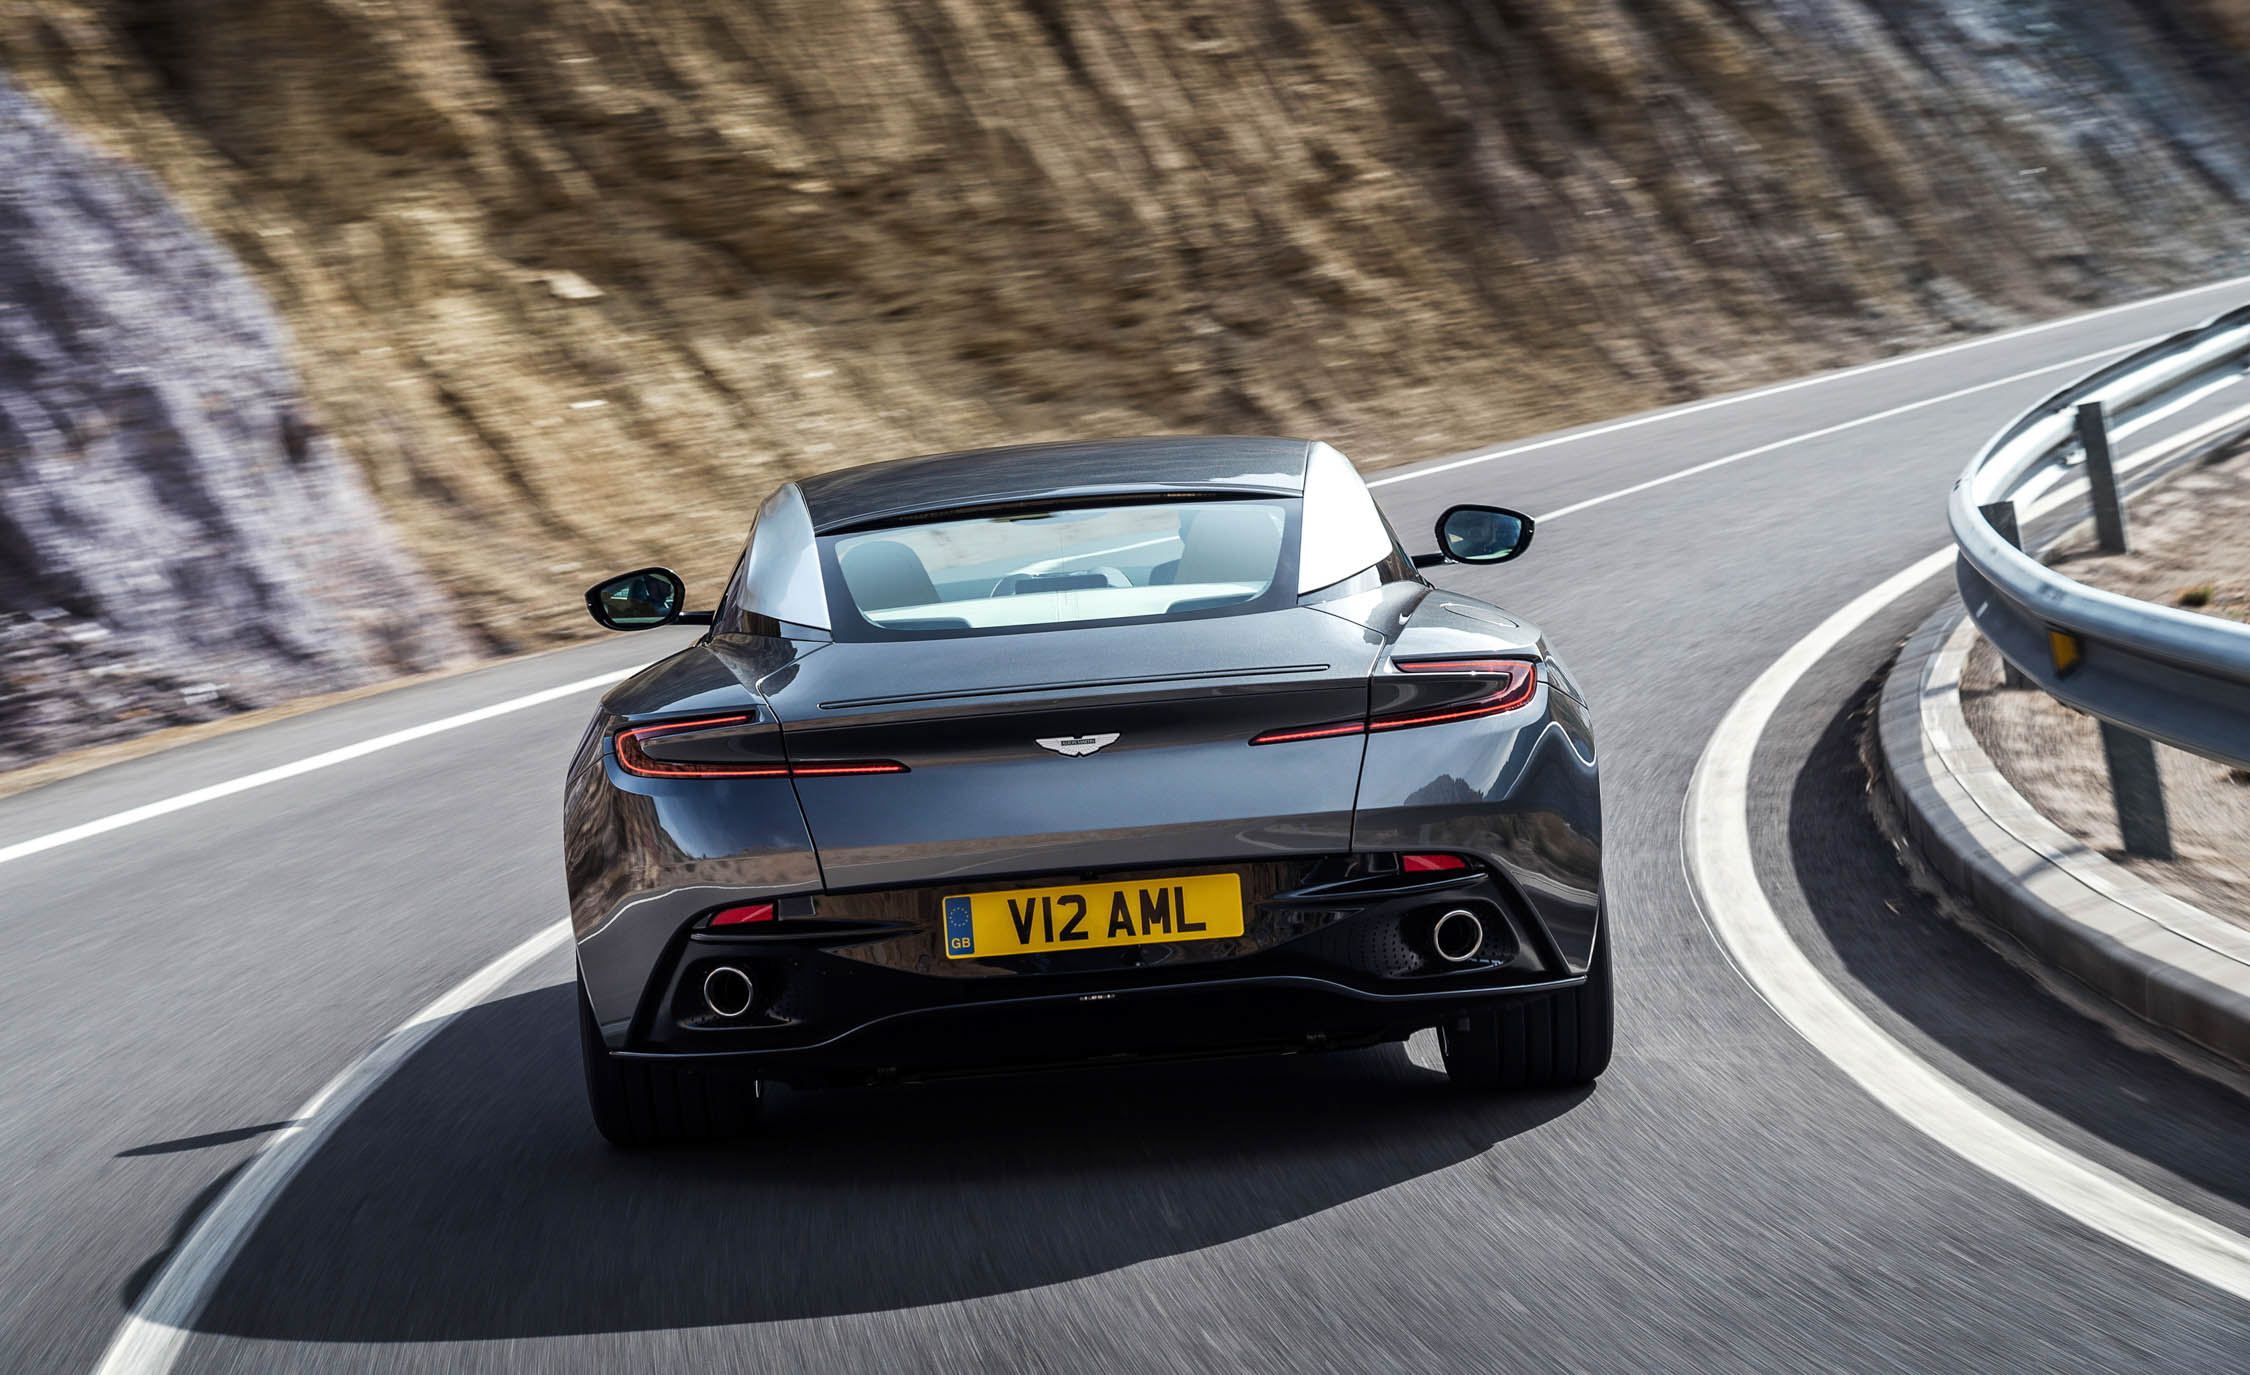 2017 Aston Martin Db11 Test Drive Rear End (Photo 17 of 22)